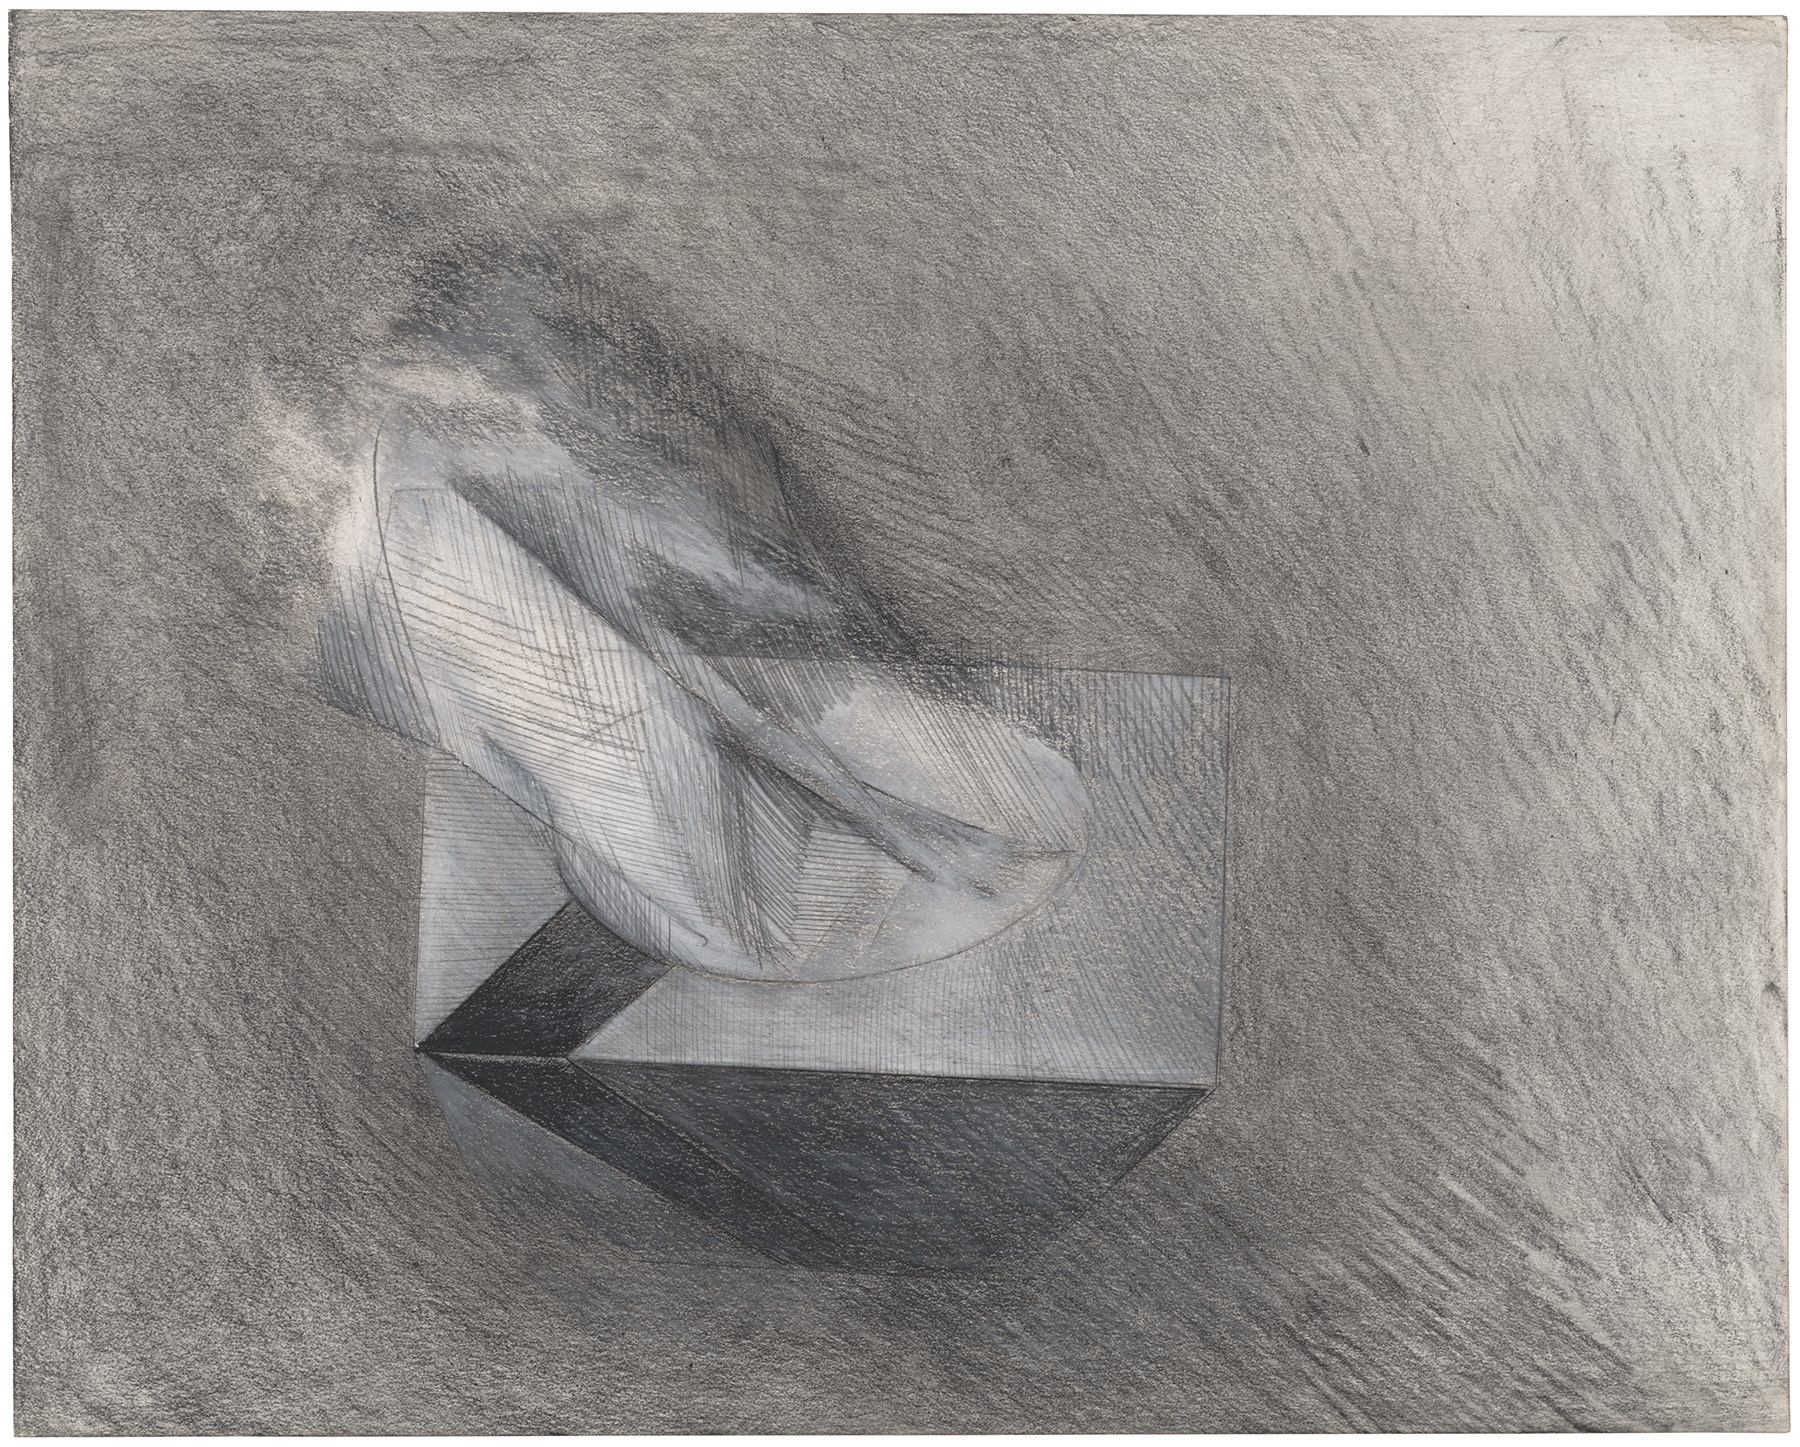 """BRUCE CONNER & JAY DEFEO (""""we are not what we seem"""") at Paula Cooper Gallery"""